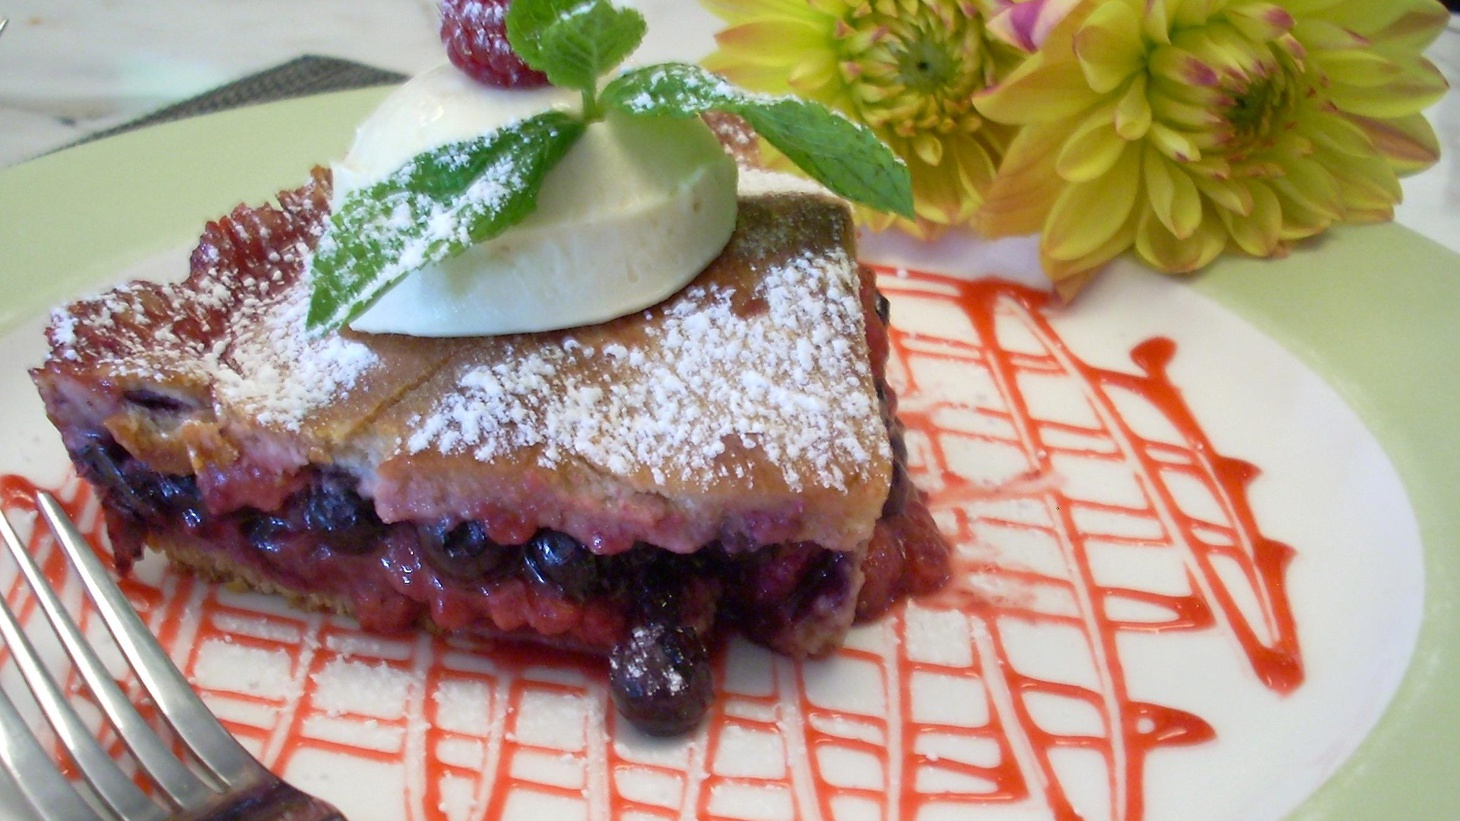 Sean Bates is an owner of Larchmont Grill where they make a Mixed Summer Berry Pie using local berries from Lavender Hill Farm. The farm is an urban farming project near Dodger Stadium. This pie is an updated version of Sean's Lithuanian grandmother's pie.